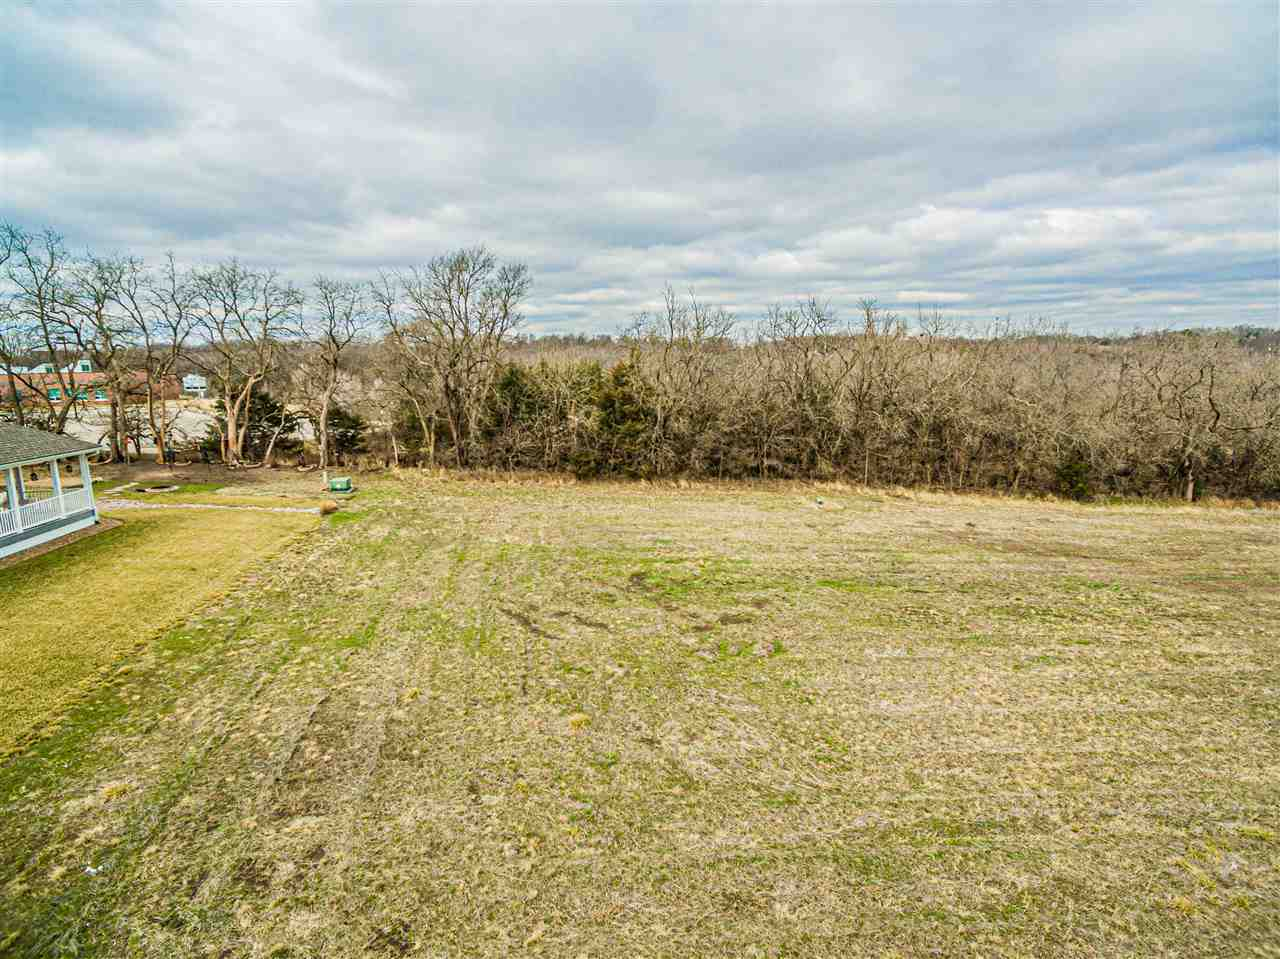 BUILD YOUR DREAM HOME-  Irish Acres Unit #3.  One of two lots available to build your dream home.  This 90x140 lot sits on the end of a private paved street. No specials!!!  This area has scenic views and wildlife close by. Minutes from I-70 Chapman Exit.  There is a 20' easement on the south, 30' easement on west on this property & covenants.  Call Becky @ NextHome Unlimited for more information @ 785.479.1920.